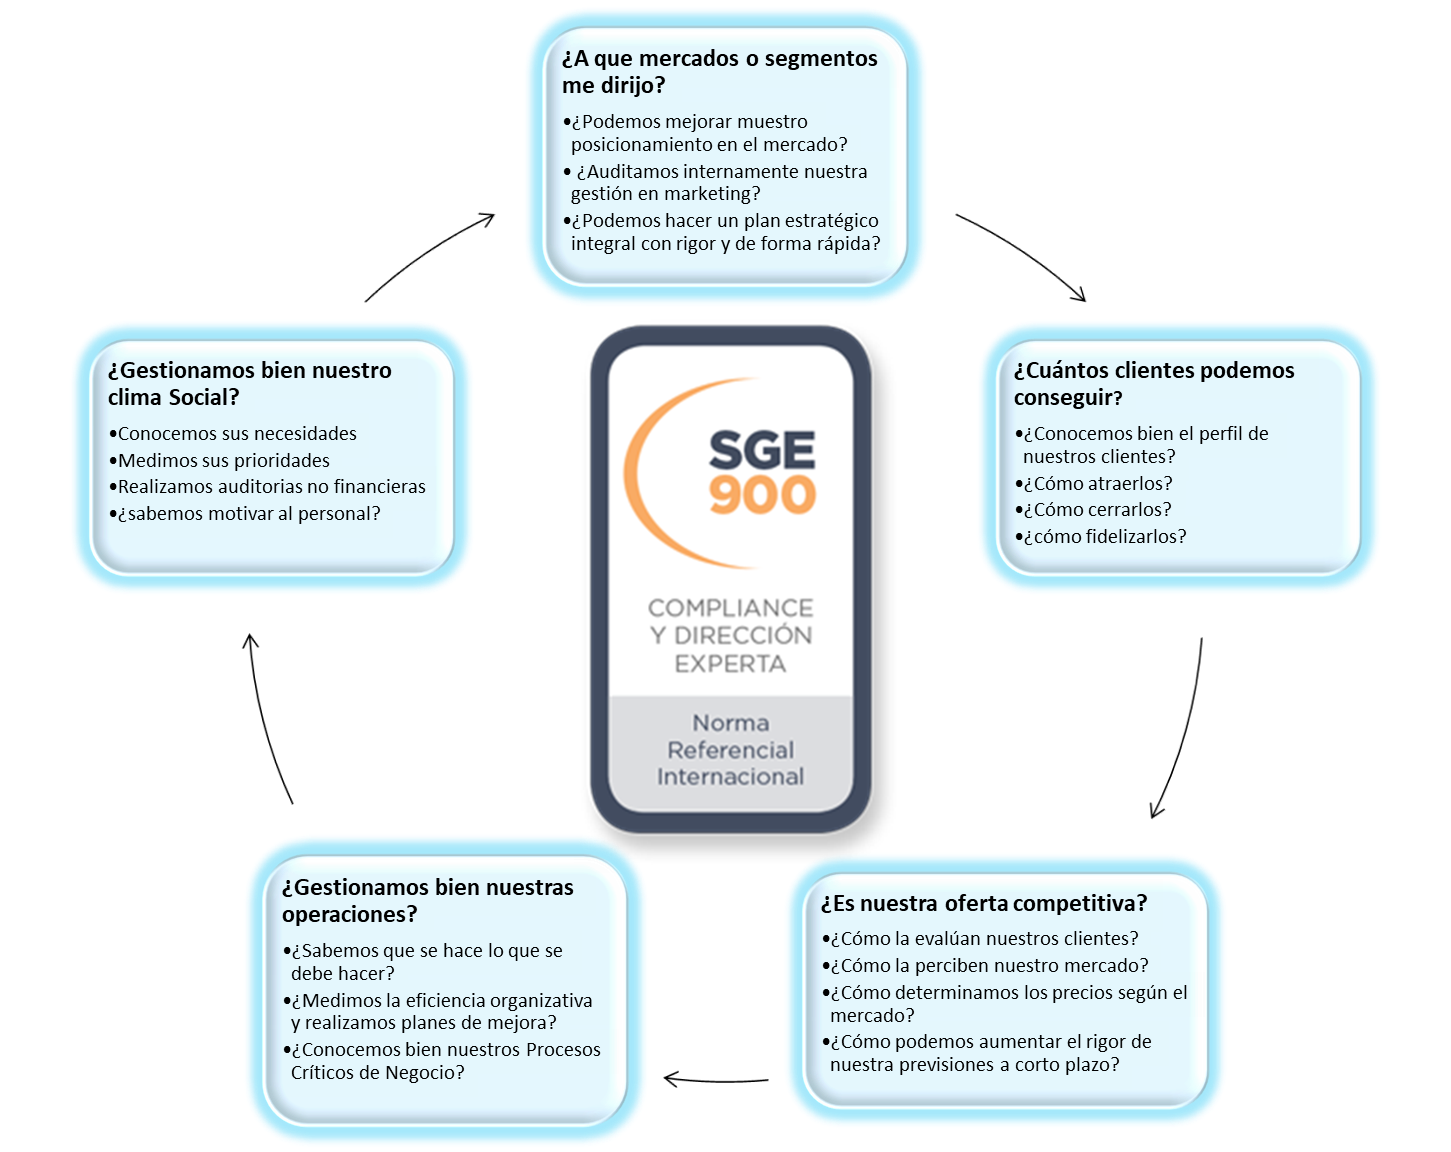 SGE 900 - Excelencia en Marketing